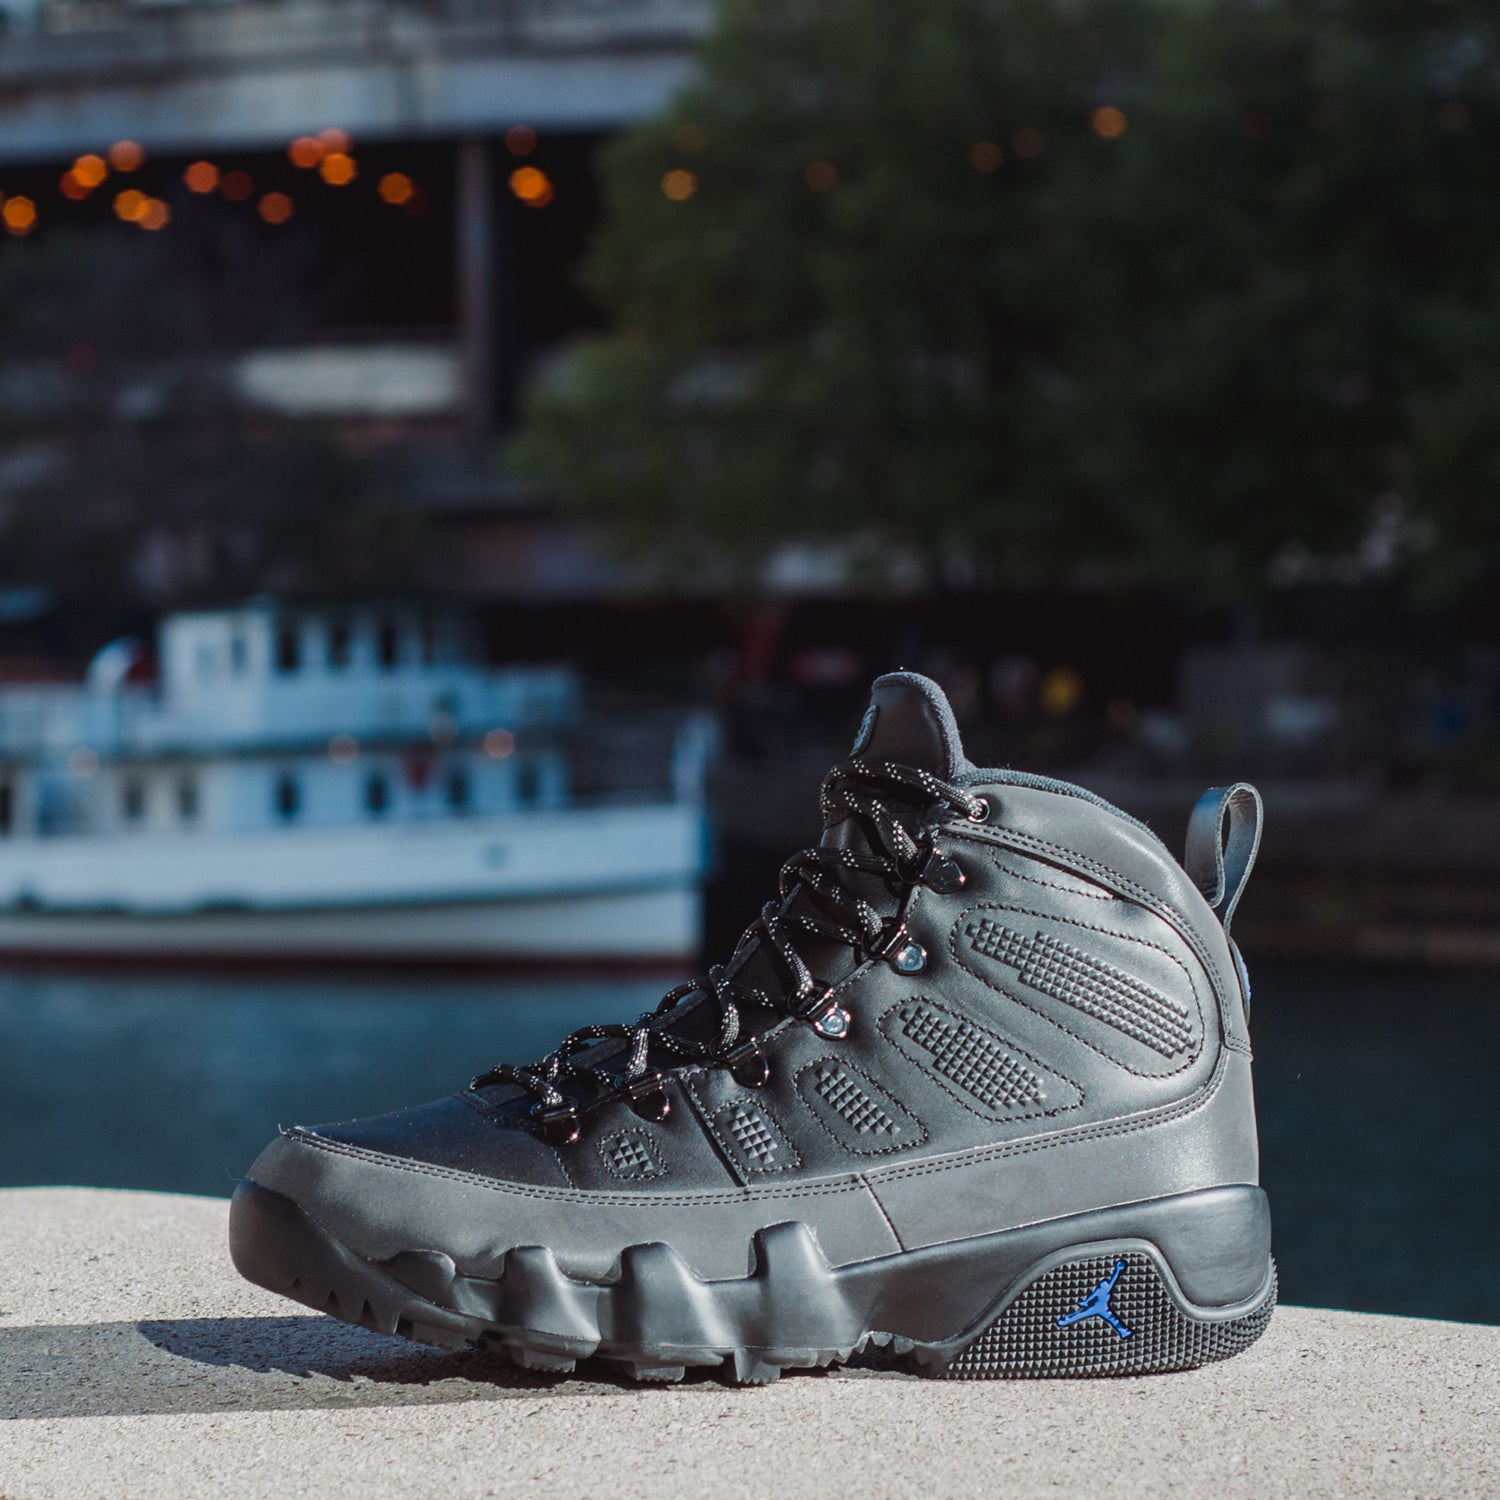 57d25a650dcfdb Men s Air Jordan 9 Retro NRG Boots – Chicago City Sports